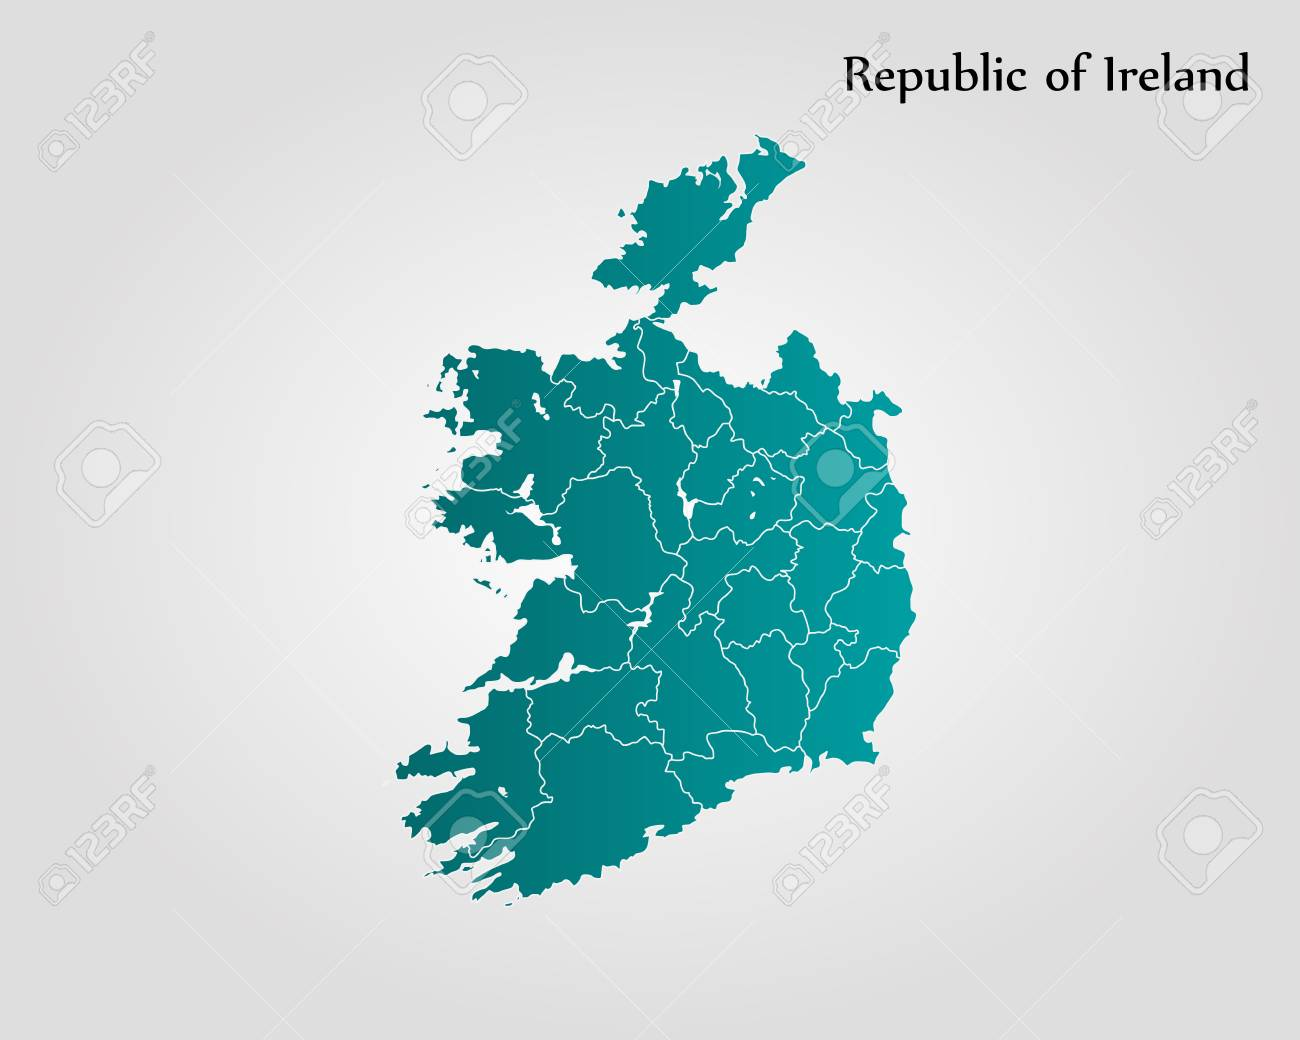 World Map With Ireland.Map Of Ireland Vector Illustration World Map Royalty Free Cliparts